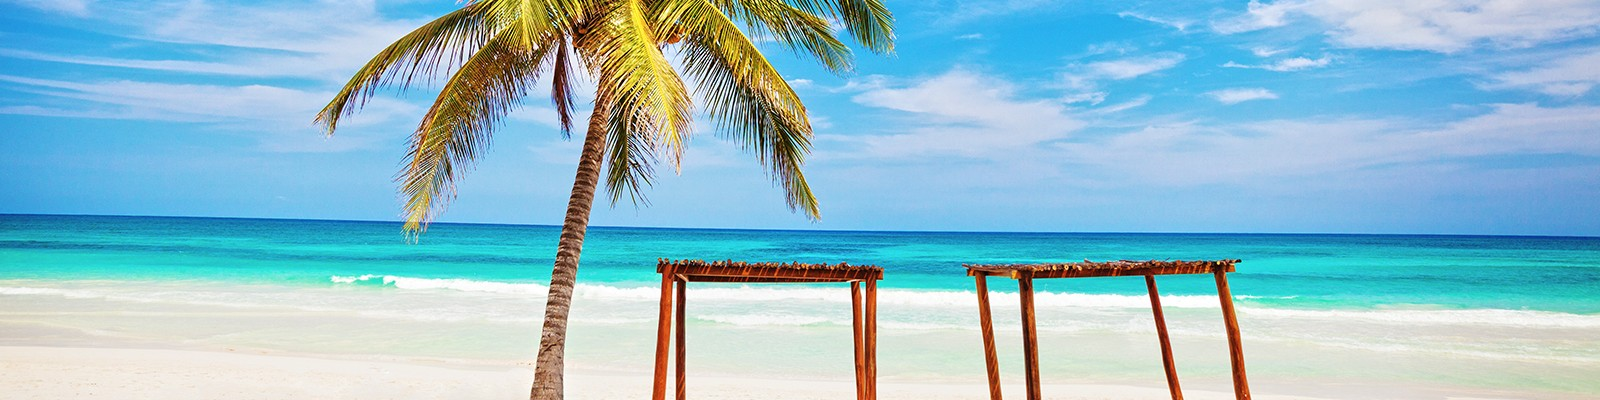 mexico honeymoon packages - header